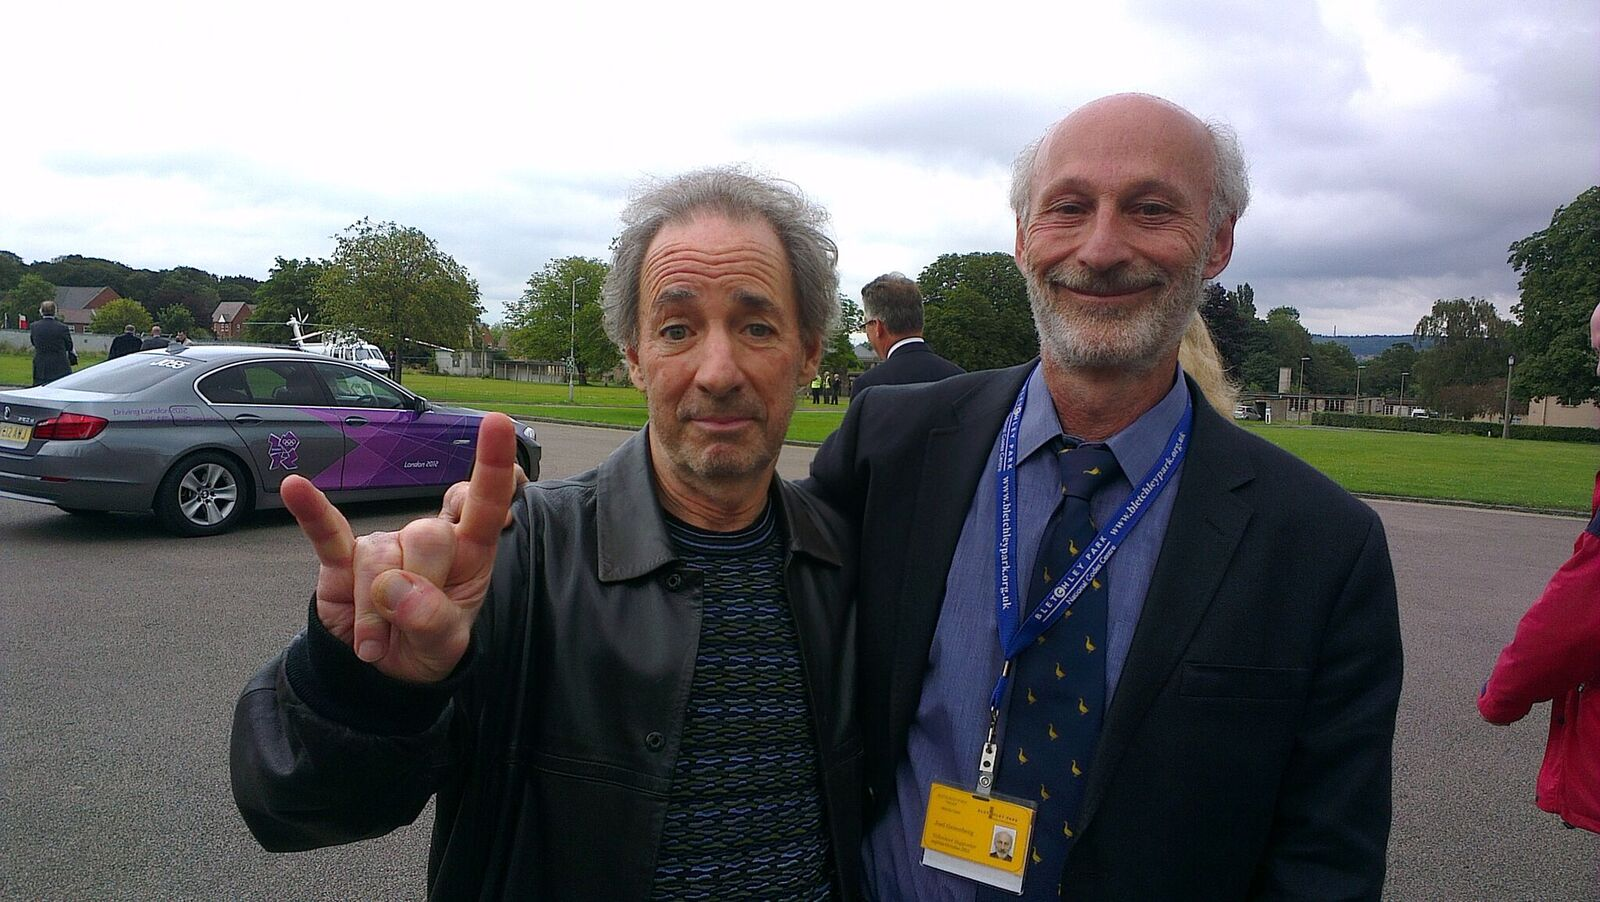 With Harry Shearer